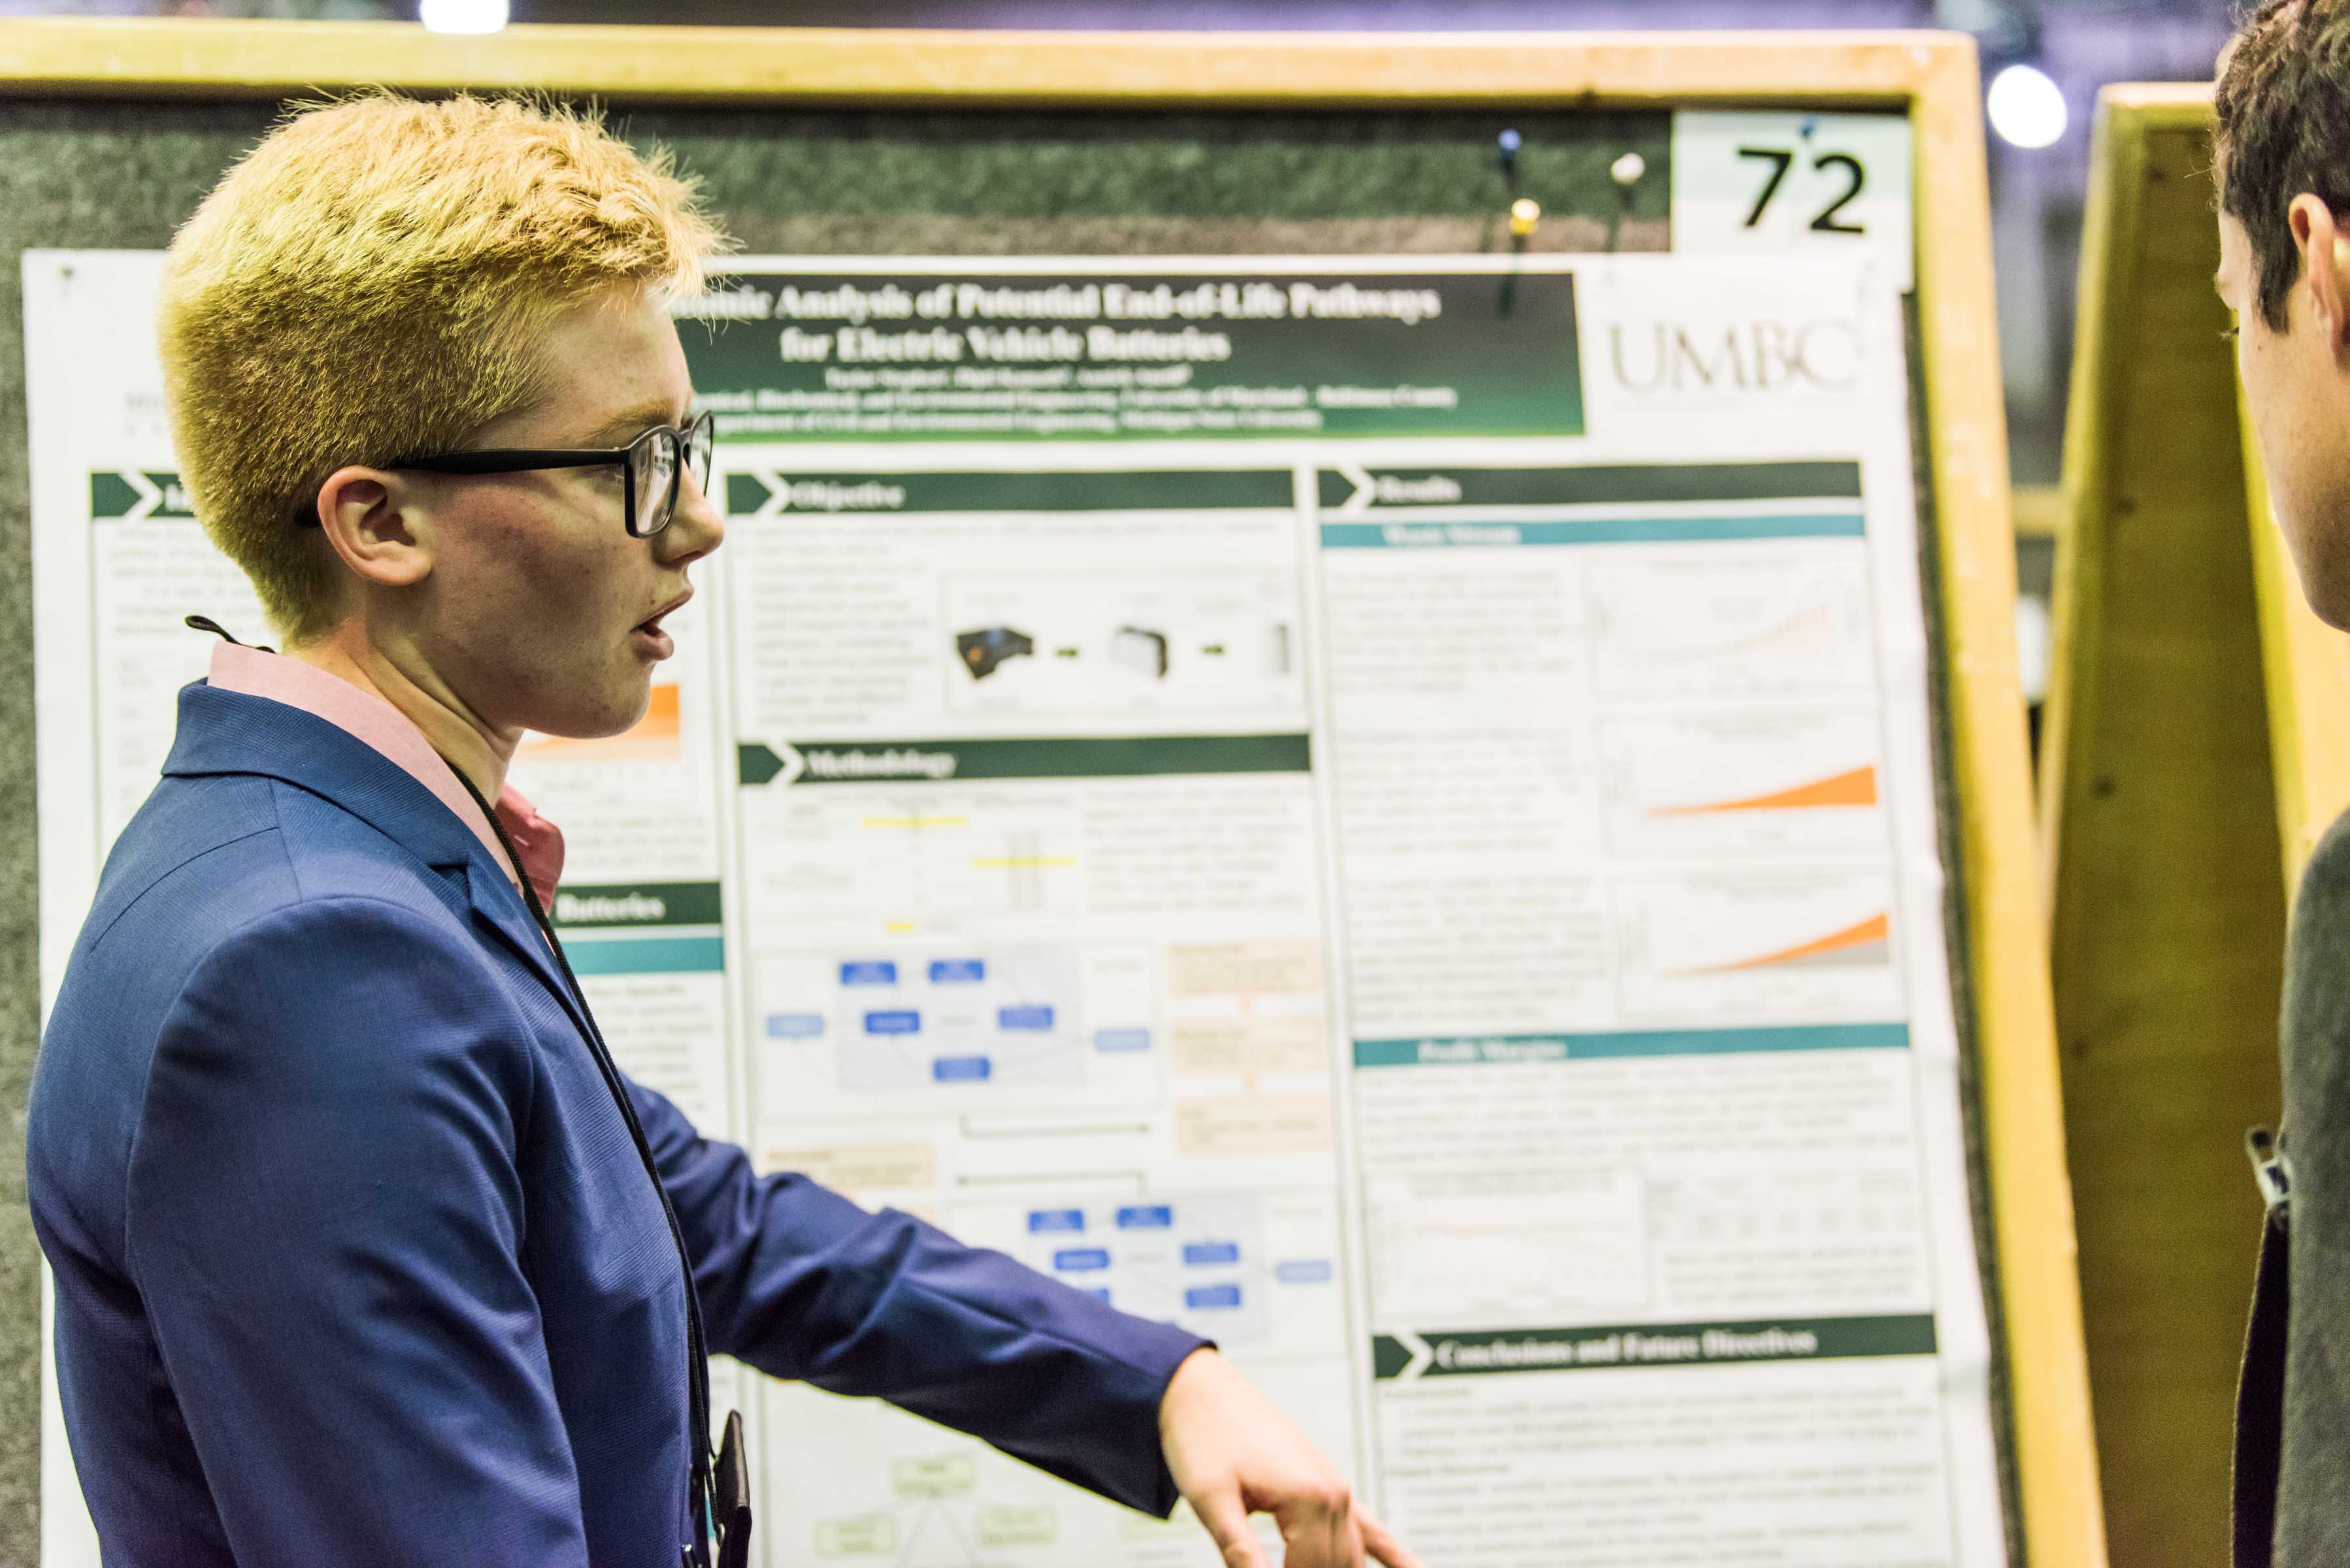 Taylor Stephen presents findings at URCAD